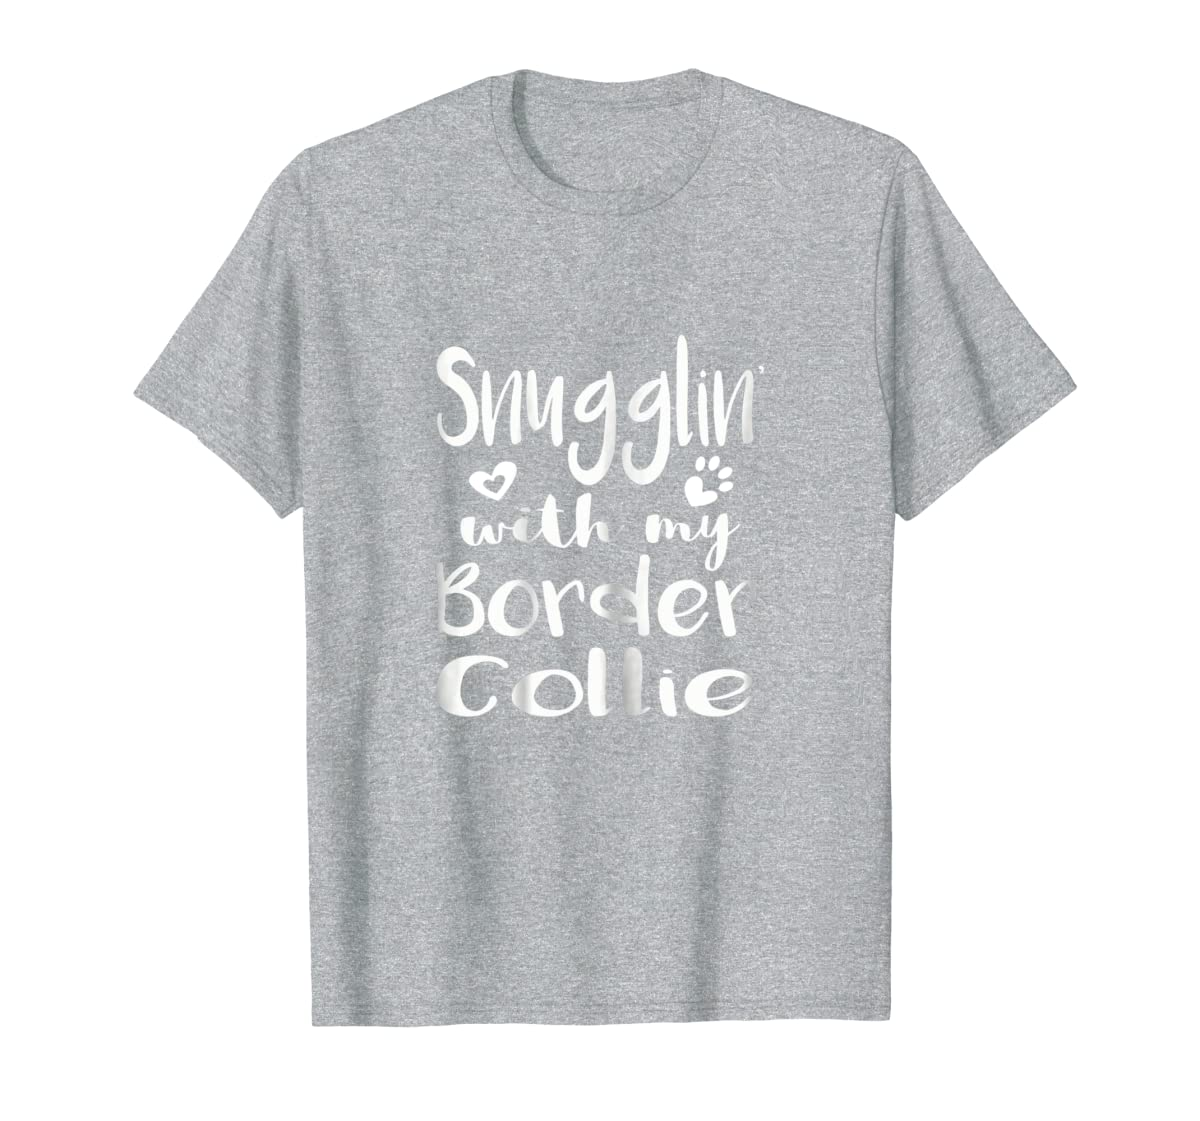 Snuggling with my Border Collie Shirt - Dog Mom pajamas-Men's T-Shirt-Sport Grey